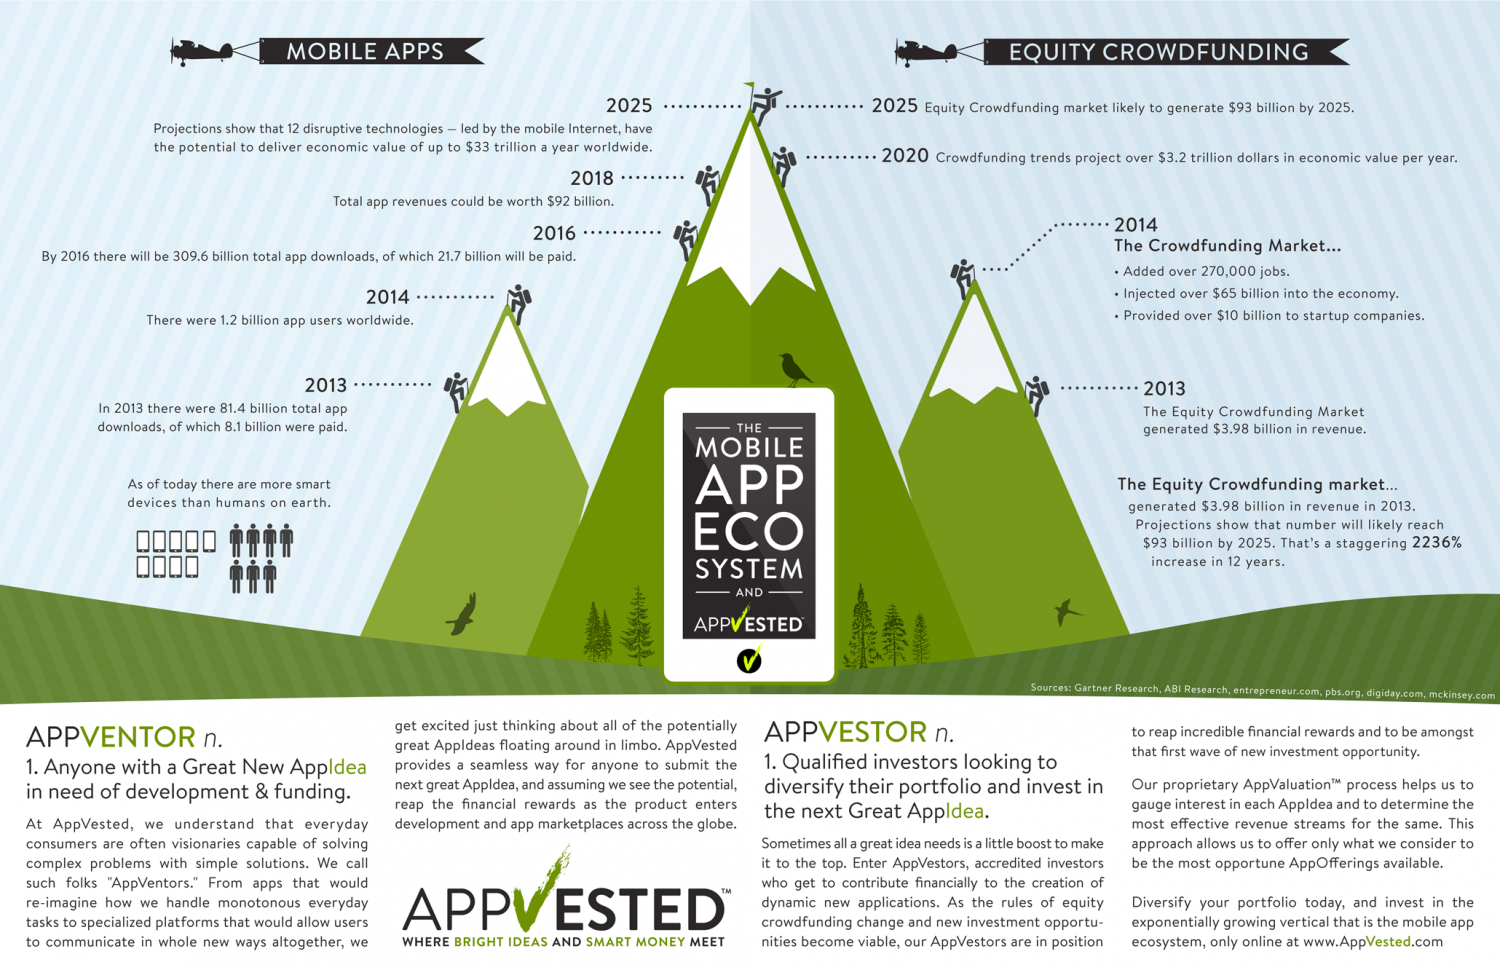 Mobile and Equity Crowdfunding EcoSystem Infographic